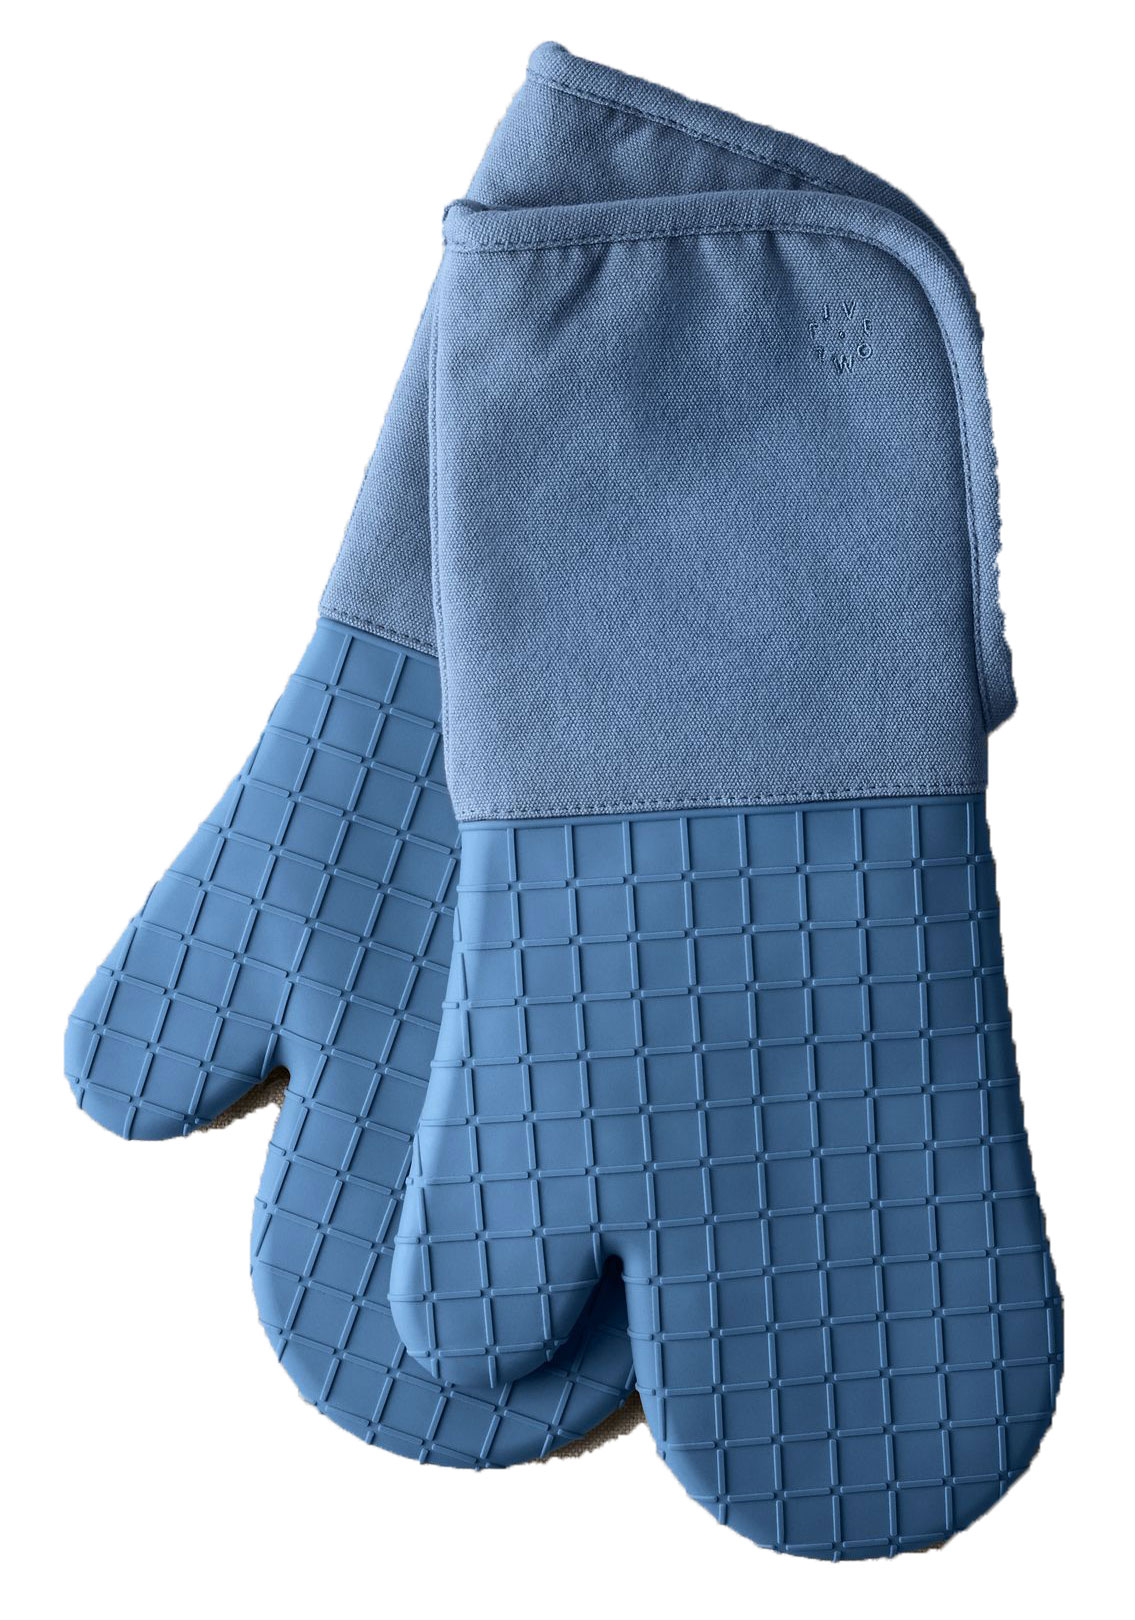 6 Clever Items 08/09/19 Five Two Silicone Oven Mitts